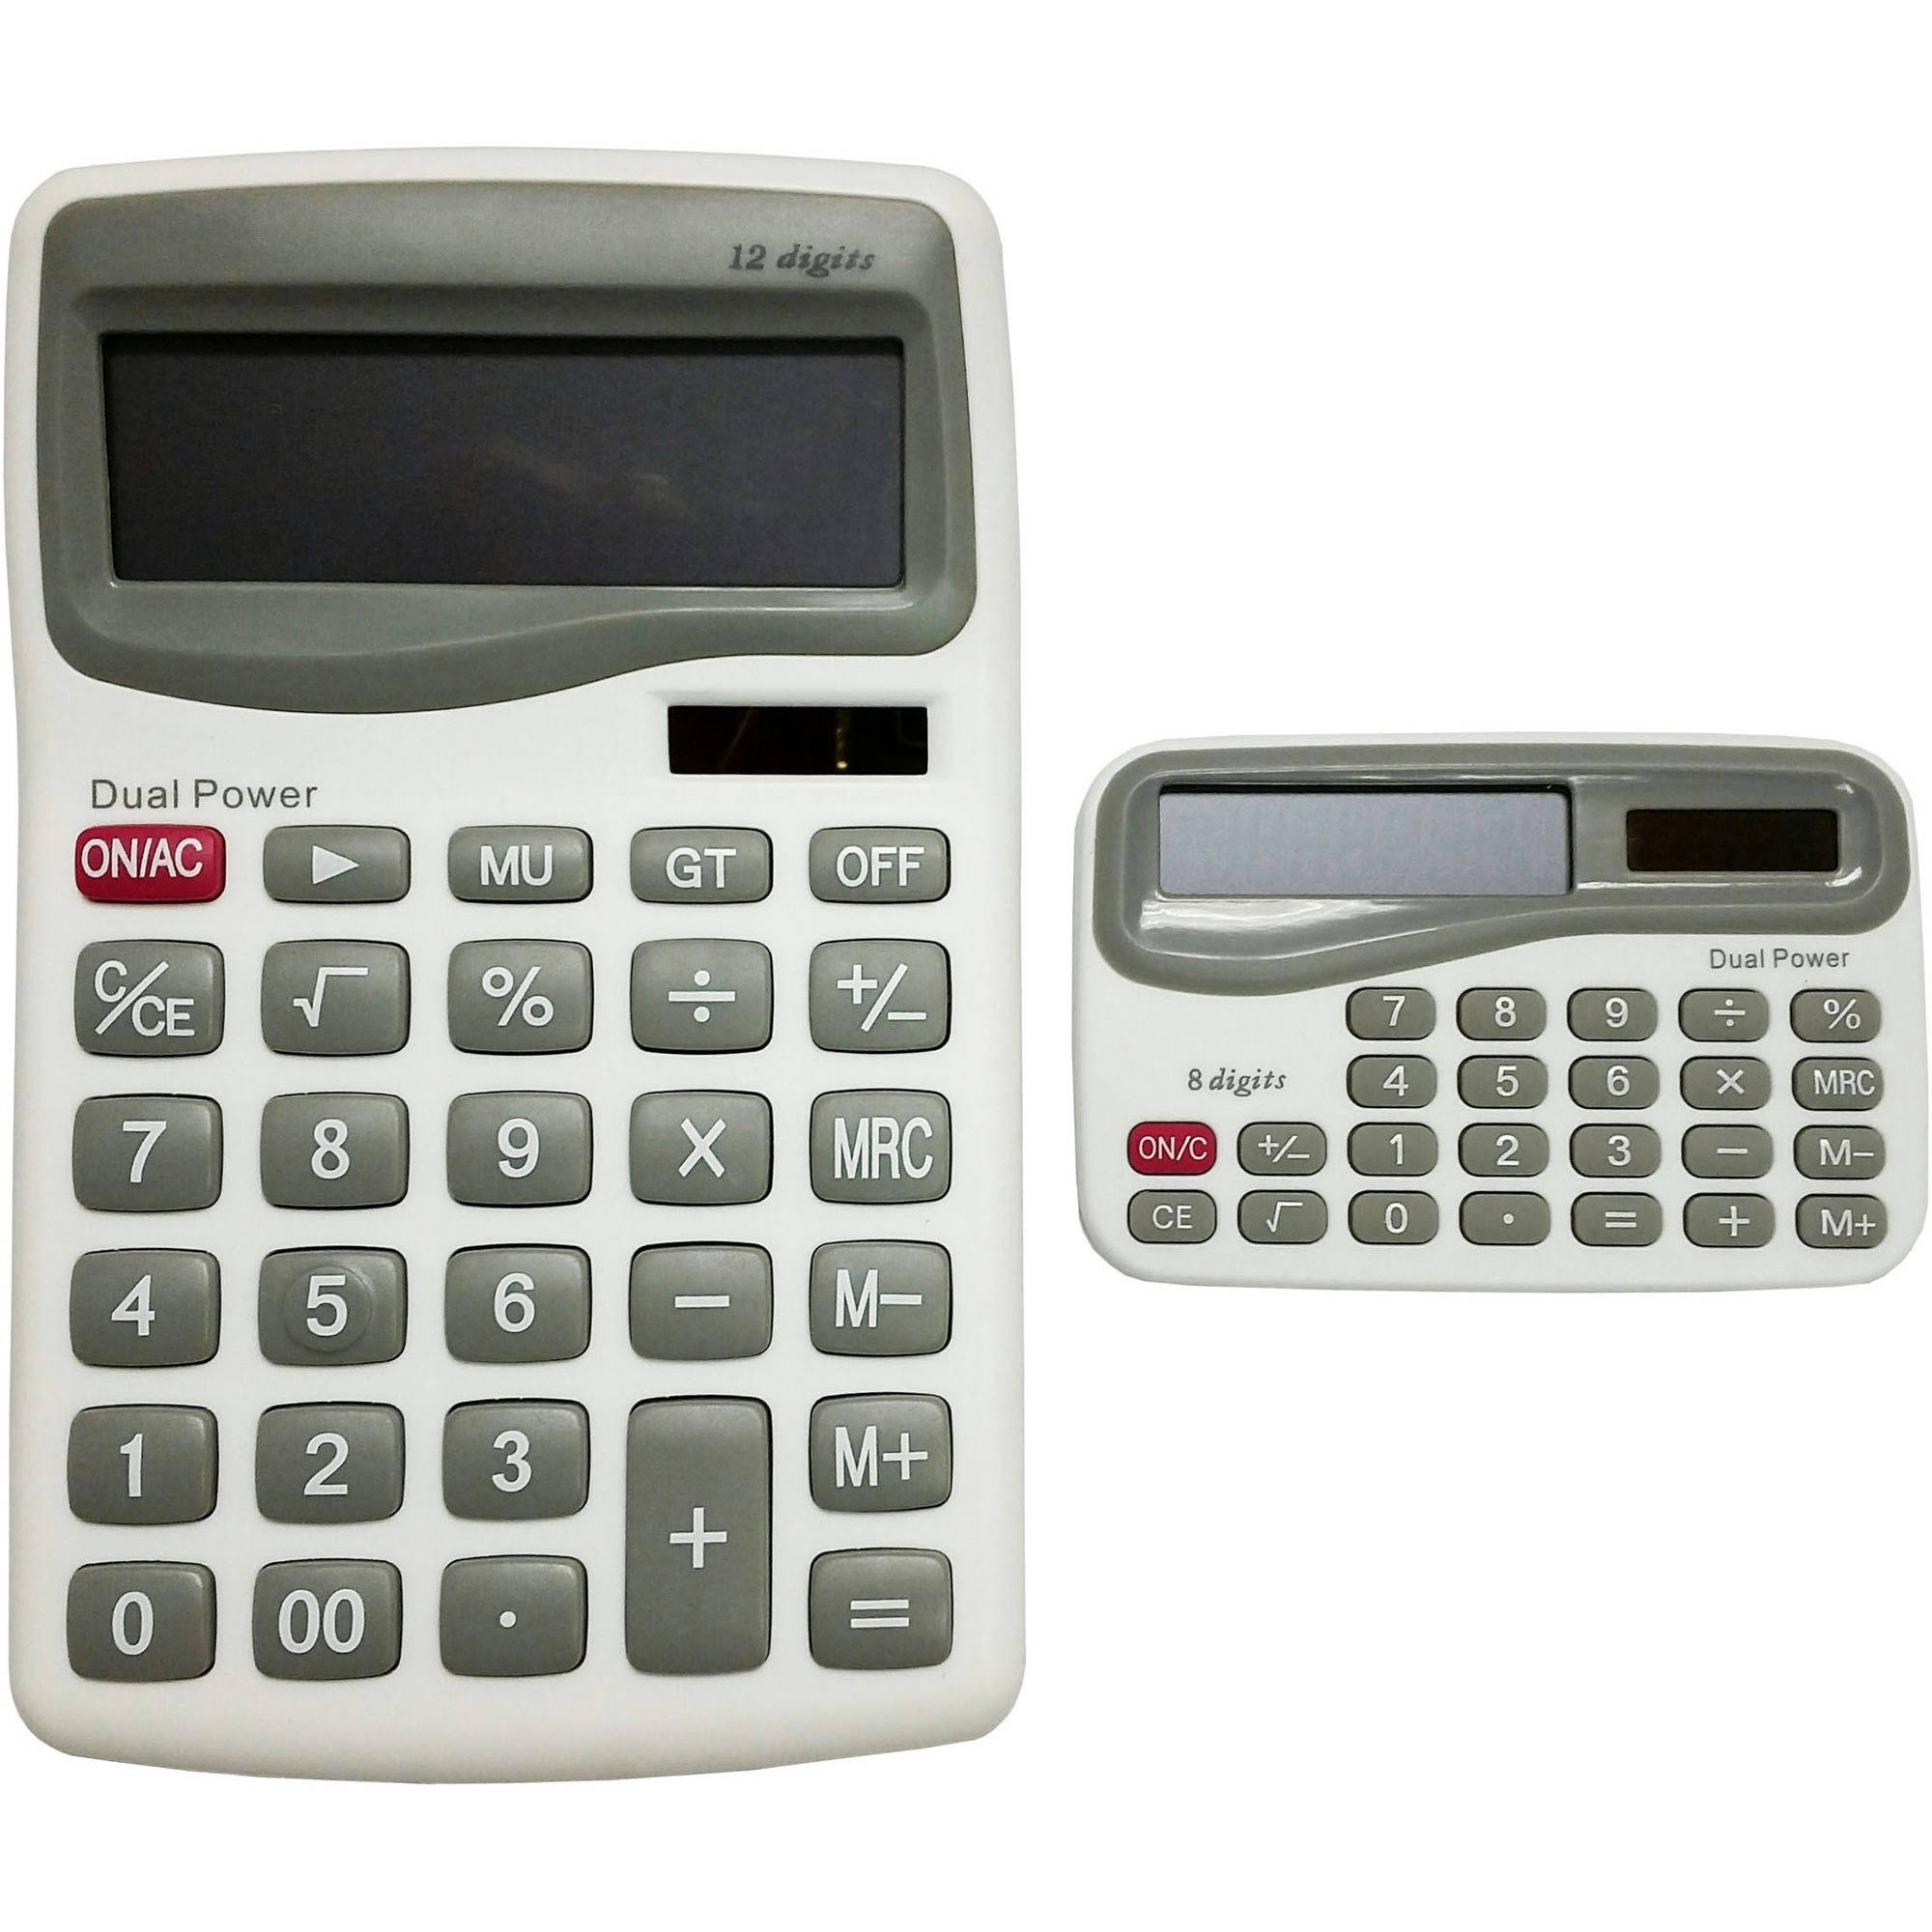 casemate 12 digit desktop and 8 digit pocket calculator value pack casemate 12 digit desktop and 8 digit pocket calculator value pack com